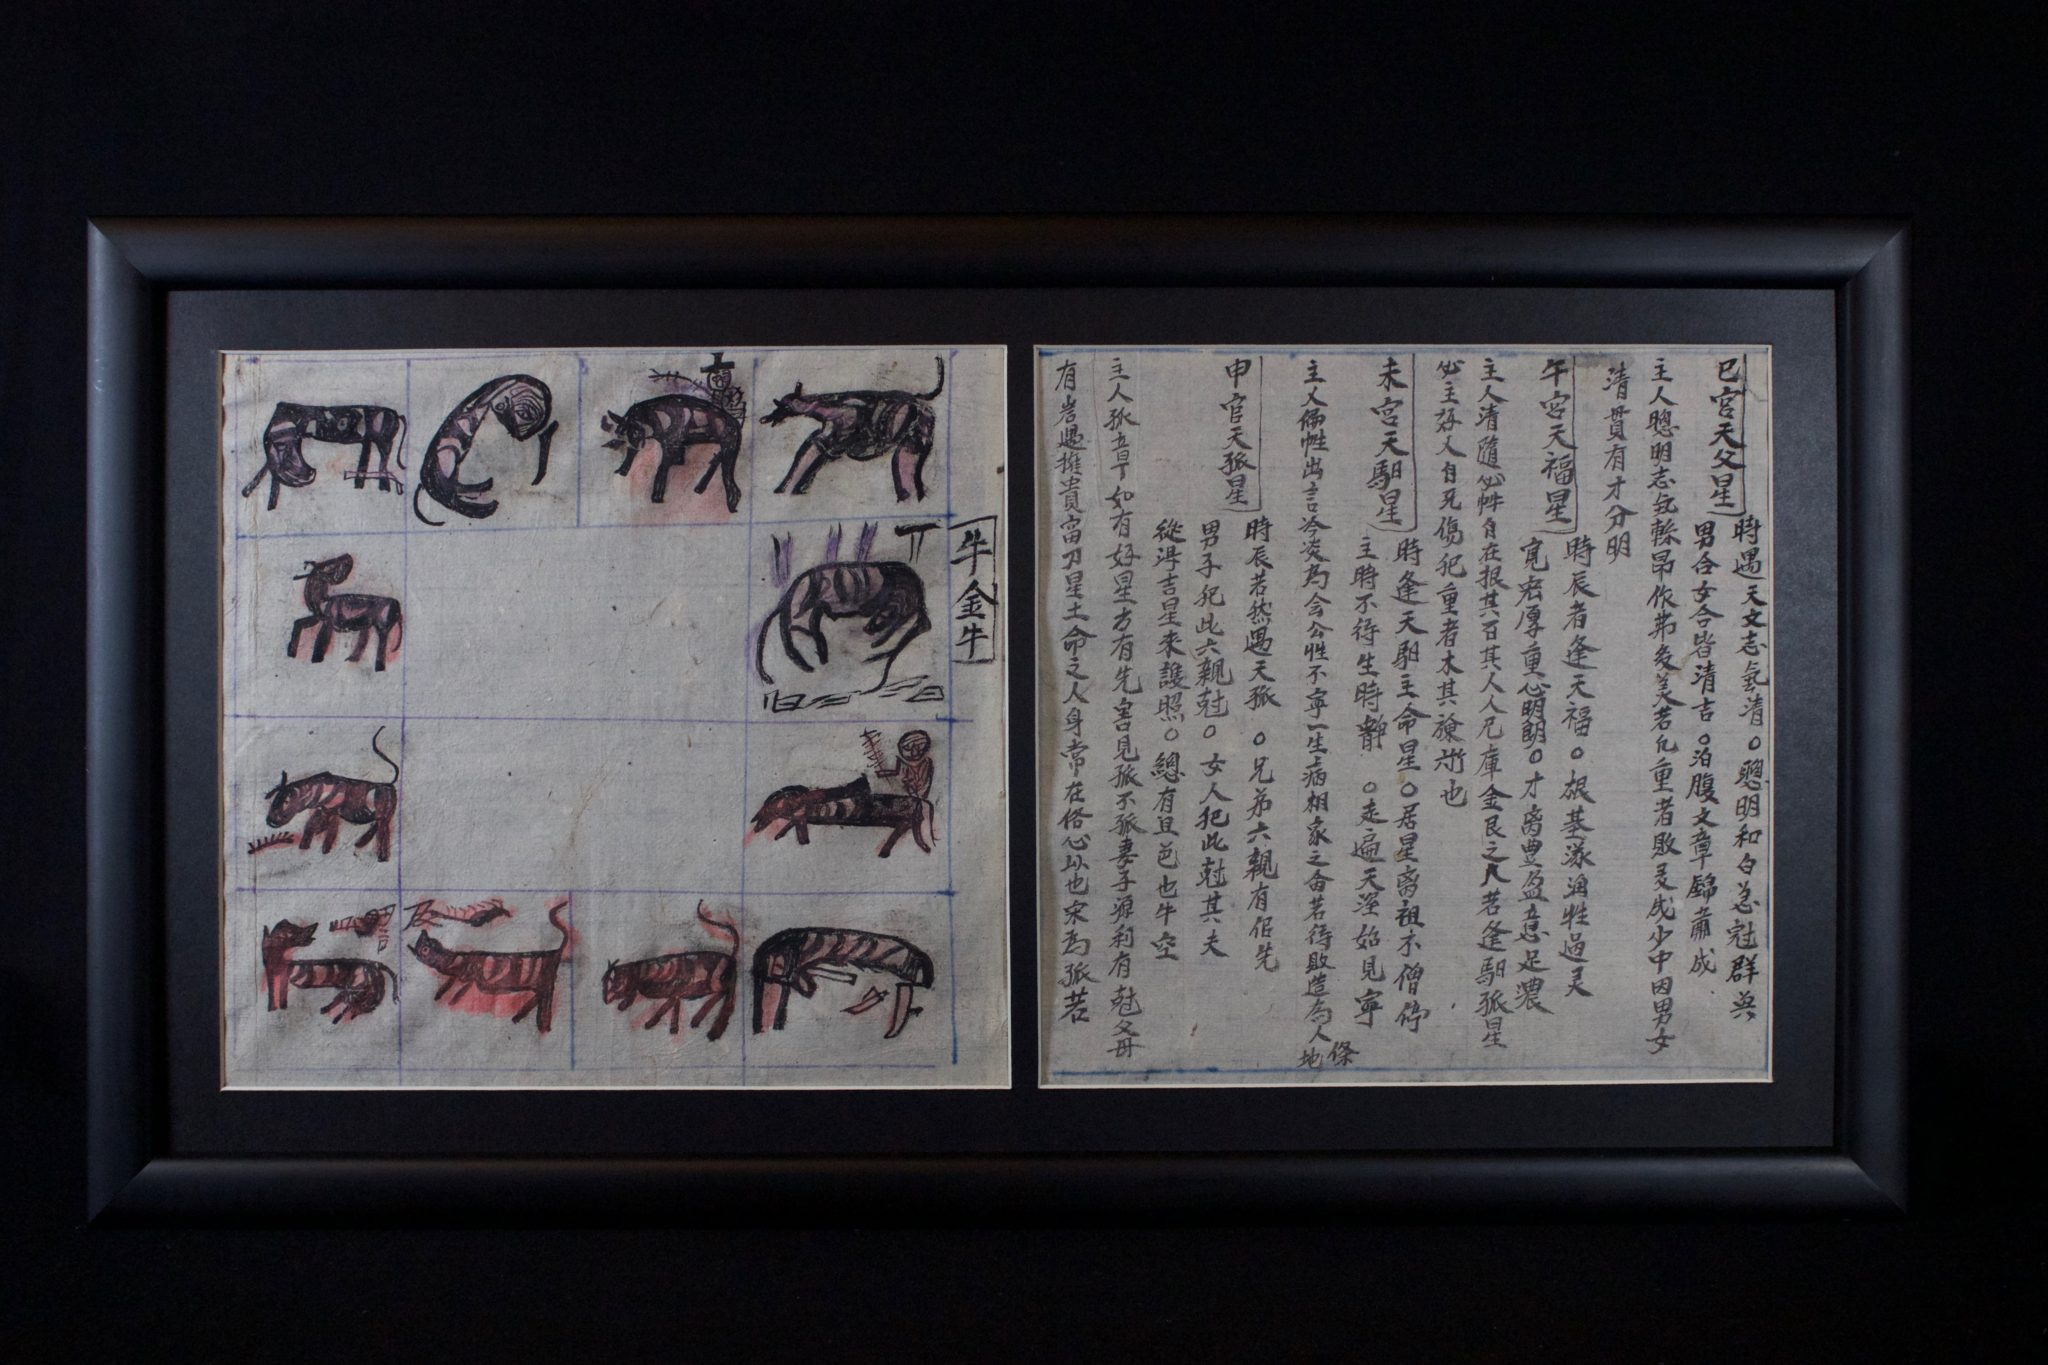 """Shaman's Personal Instruction Book, Cao Bang province, Vietnam Red Yao people, Early 20th c, Ink on handmade mulberry paper (tapa), Written in Nom (Chinese characters adapted to Vietnamese), books are an integral part of a shaman's repertoire. They range from explanations of various rituals and use of objects, to astrology, history, songs, laws, etiquette, children's tales, hunting practices, formulas, spells and Feng Shui. Shaman make their own books to help store their knowledge therefore no two are alike and a high level shaman will have a large library. 9 ½"""" x 8 ½"""" x ¾"""", $850."""